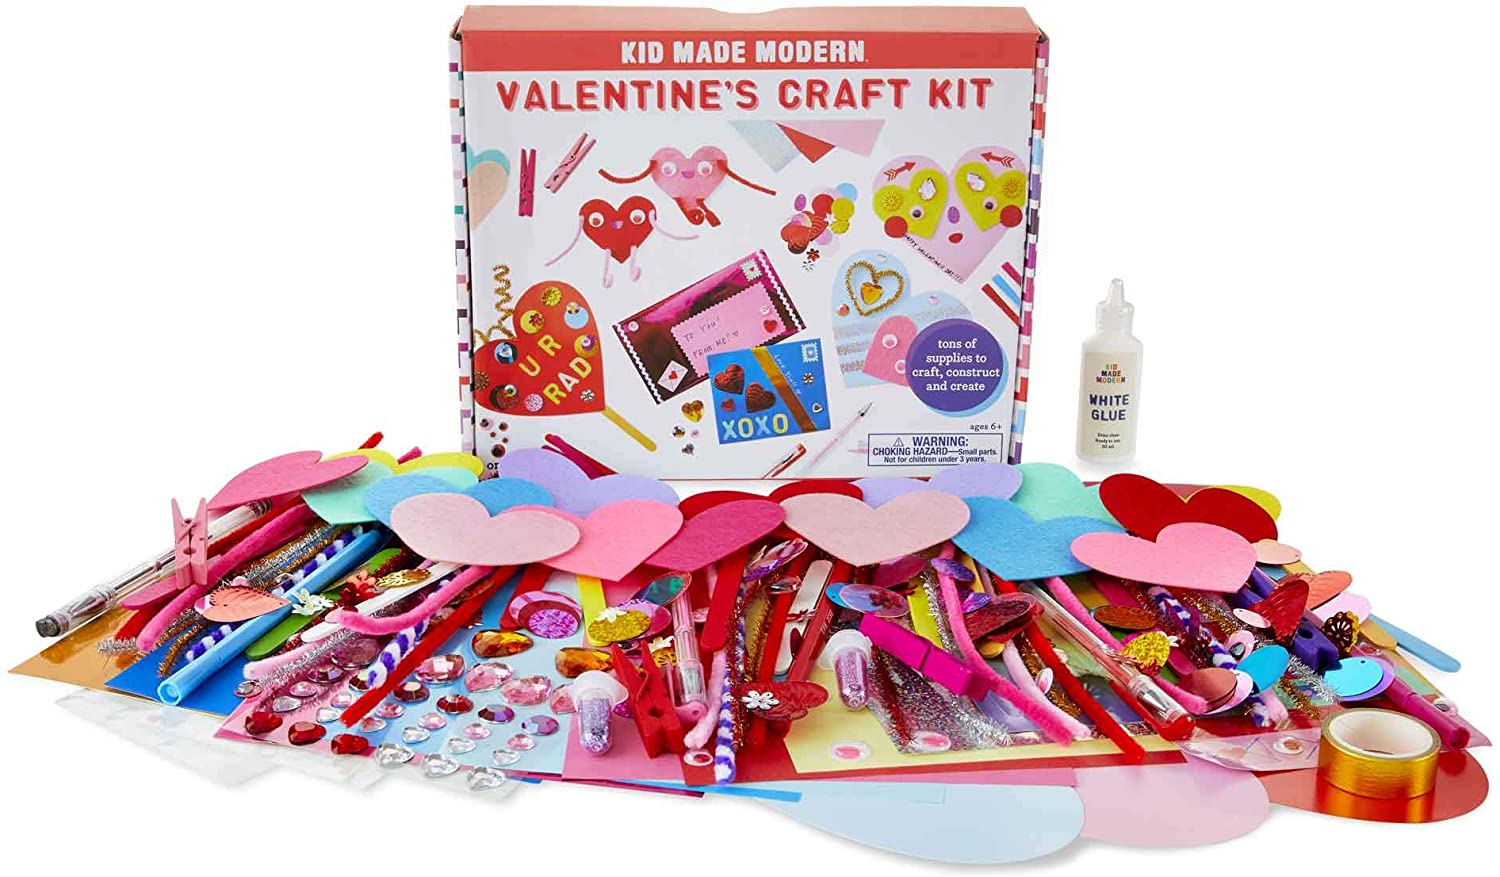 Kid Made Modern Valentine's Craft Kit - Sweet Art Supplies for Your Little Valentine, Ages 6 and up